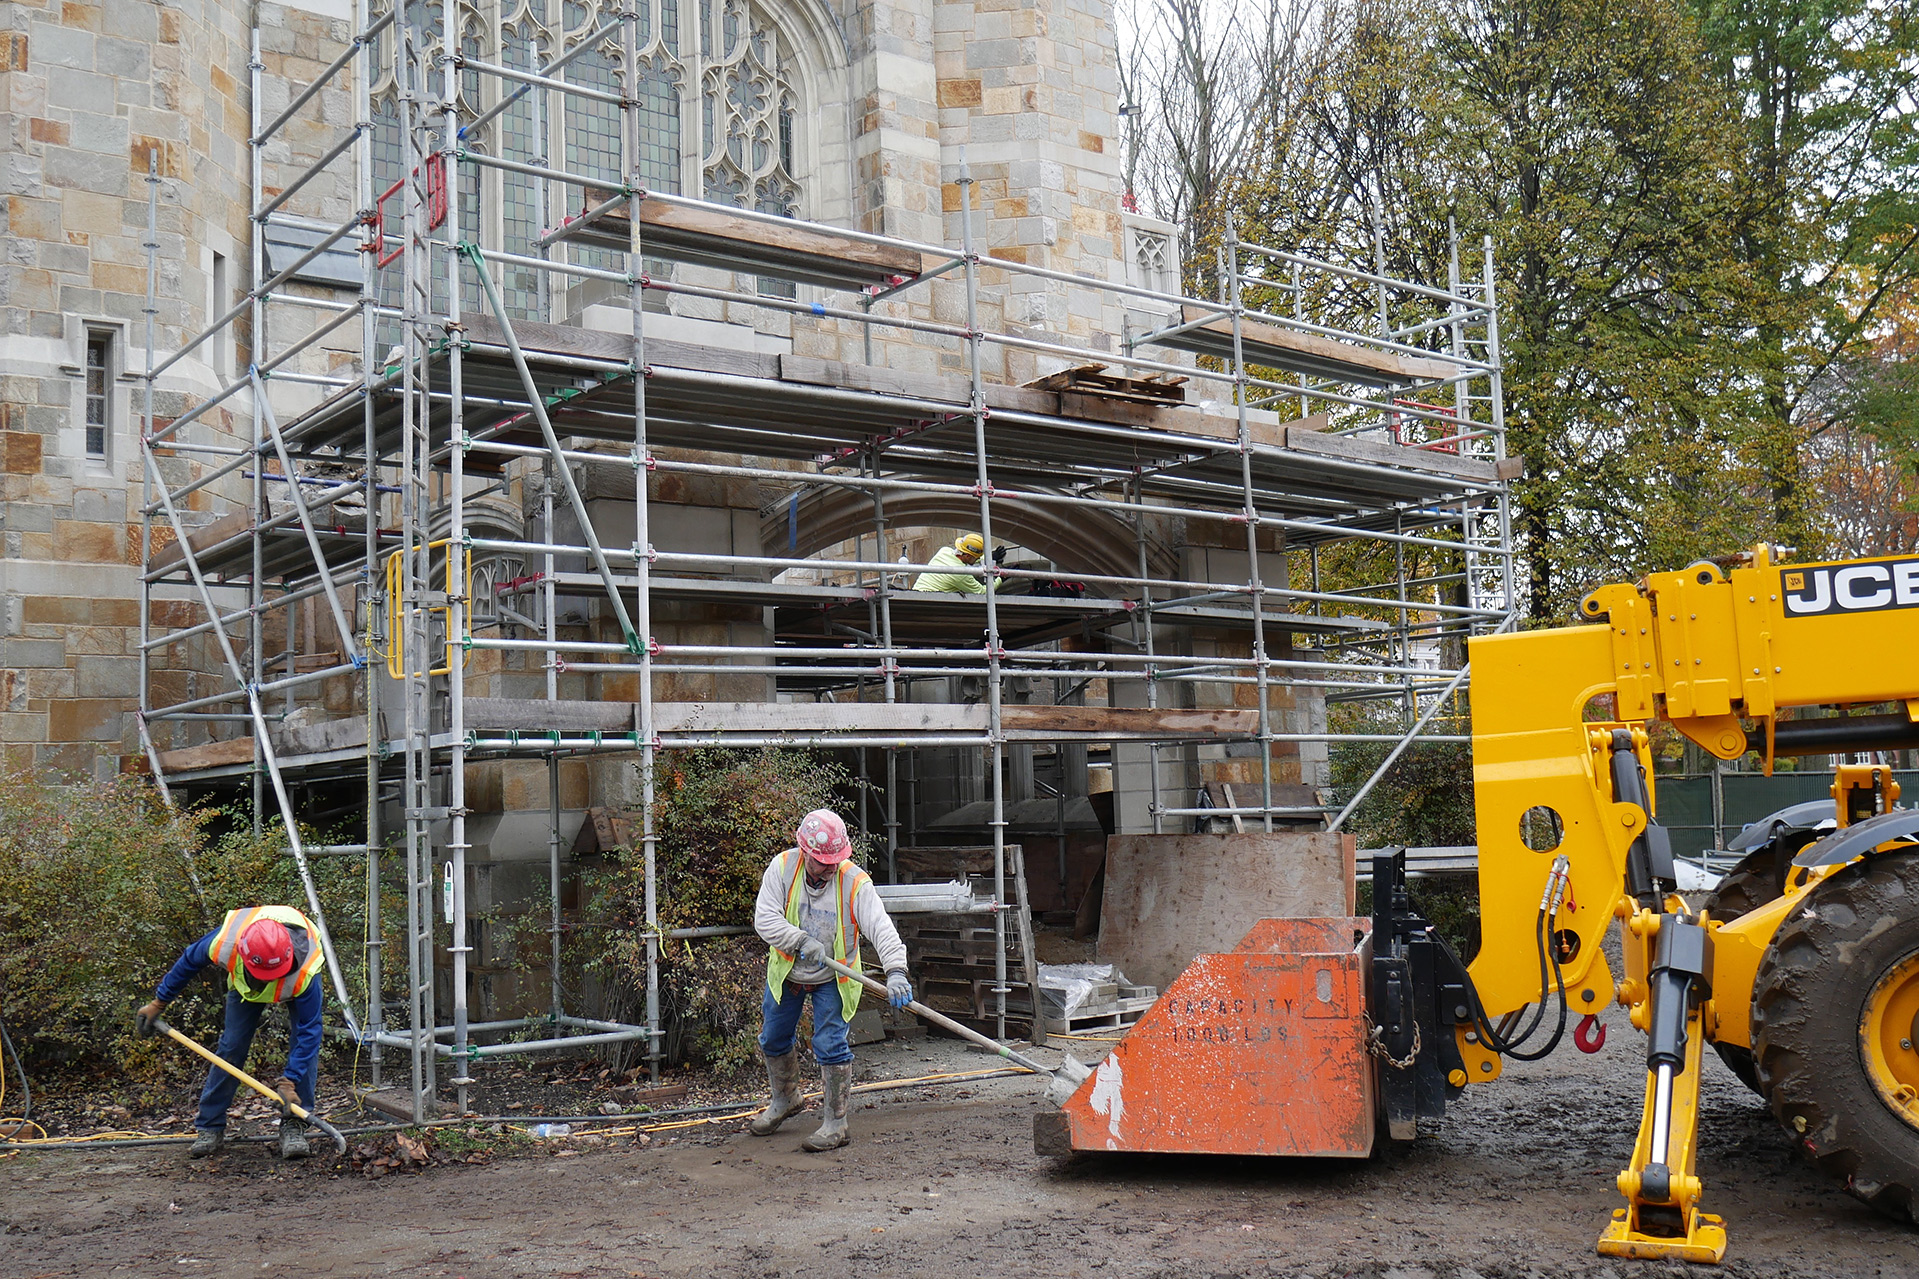 Cleaning up around the Gomes Chapel portico on Oct. 30, 2019. Note the new arch at center -- much of the exterior masonry on the portico has been renewed. The floor and roof will be replaced next spring or summer. (Doug Hubley/Bates College)